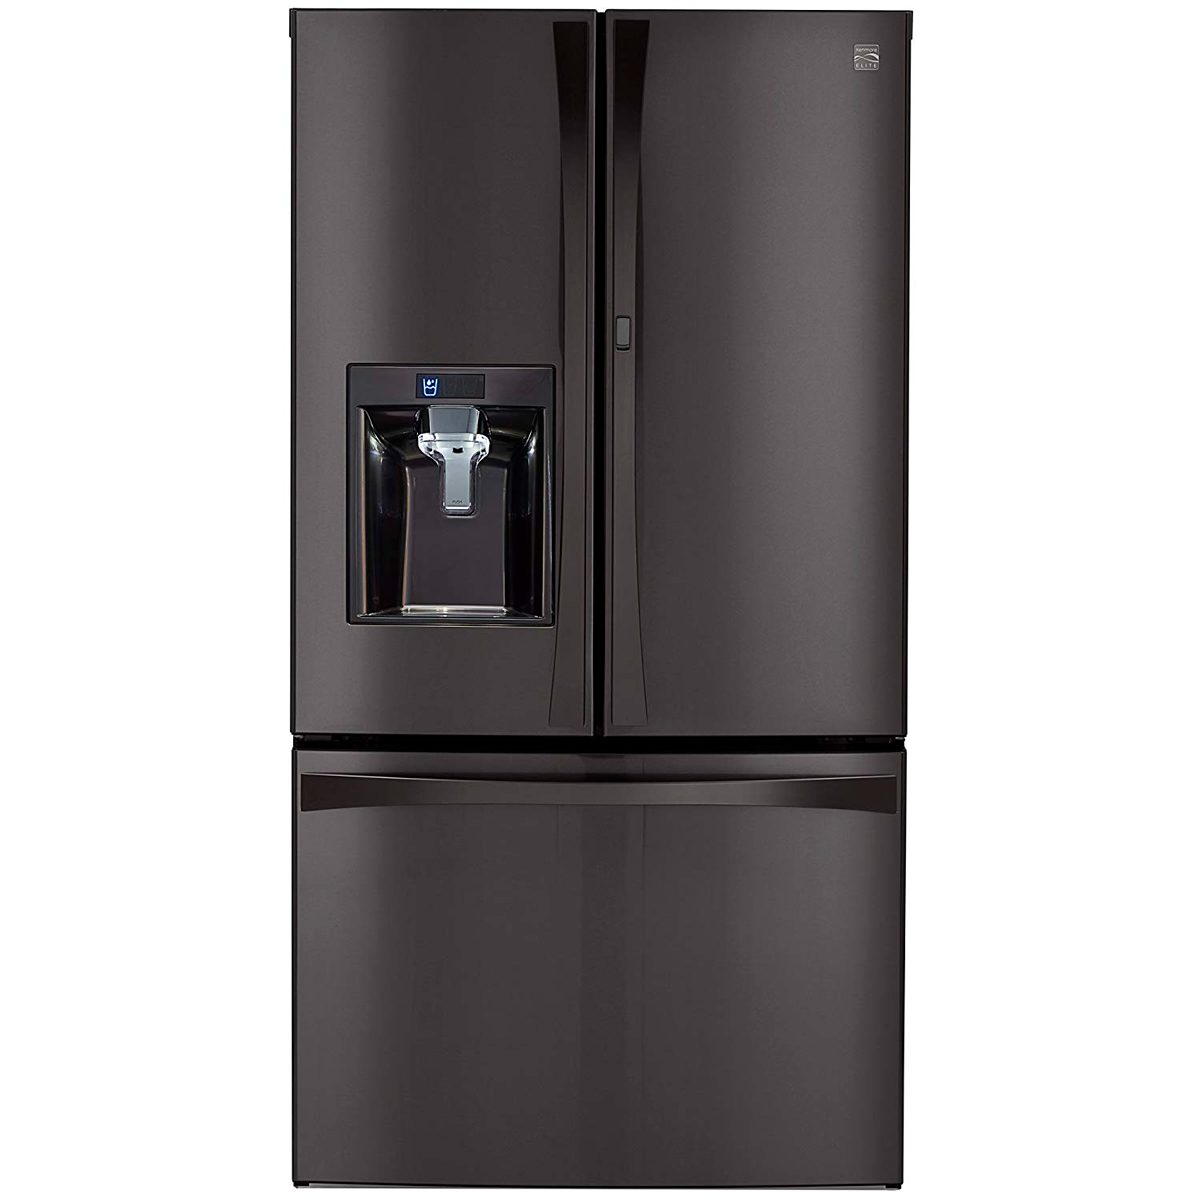 10 Highly Reviewed Refrigerators on Amazon